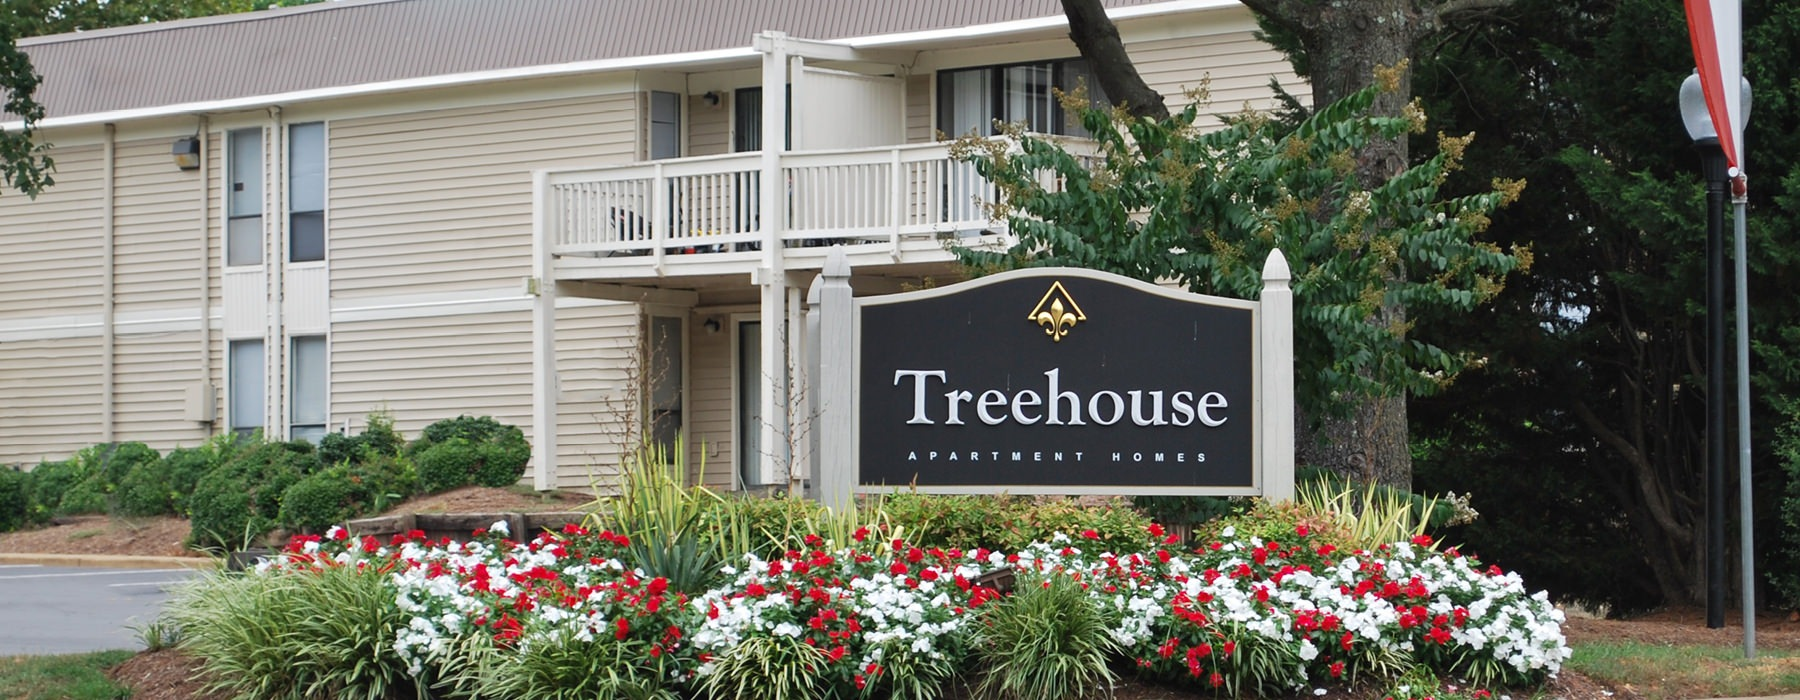 treehouse property entrance sign in front of complex